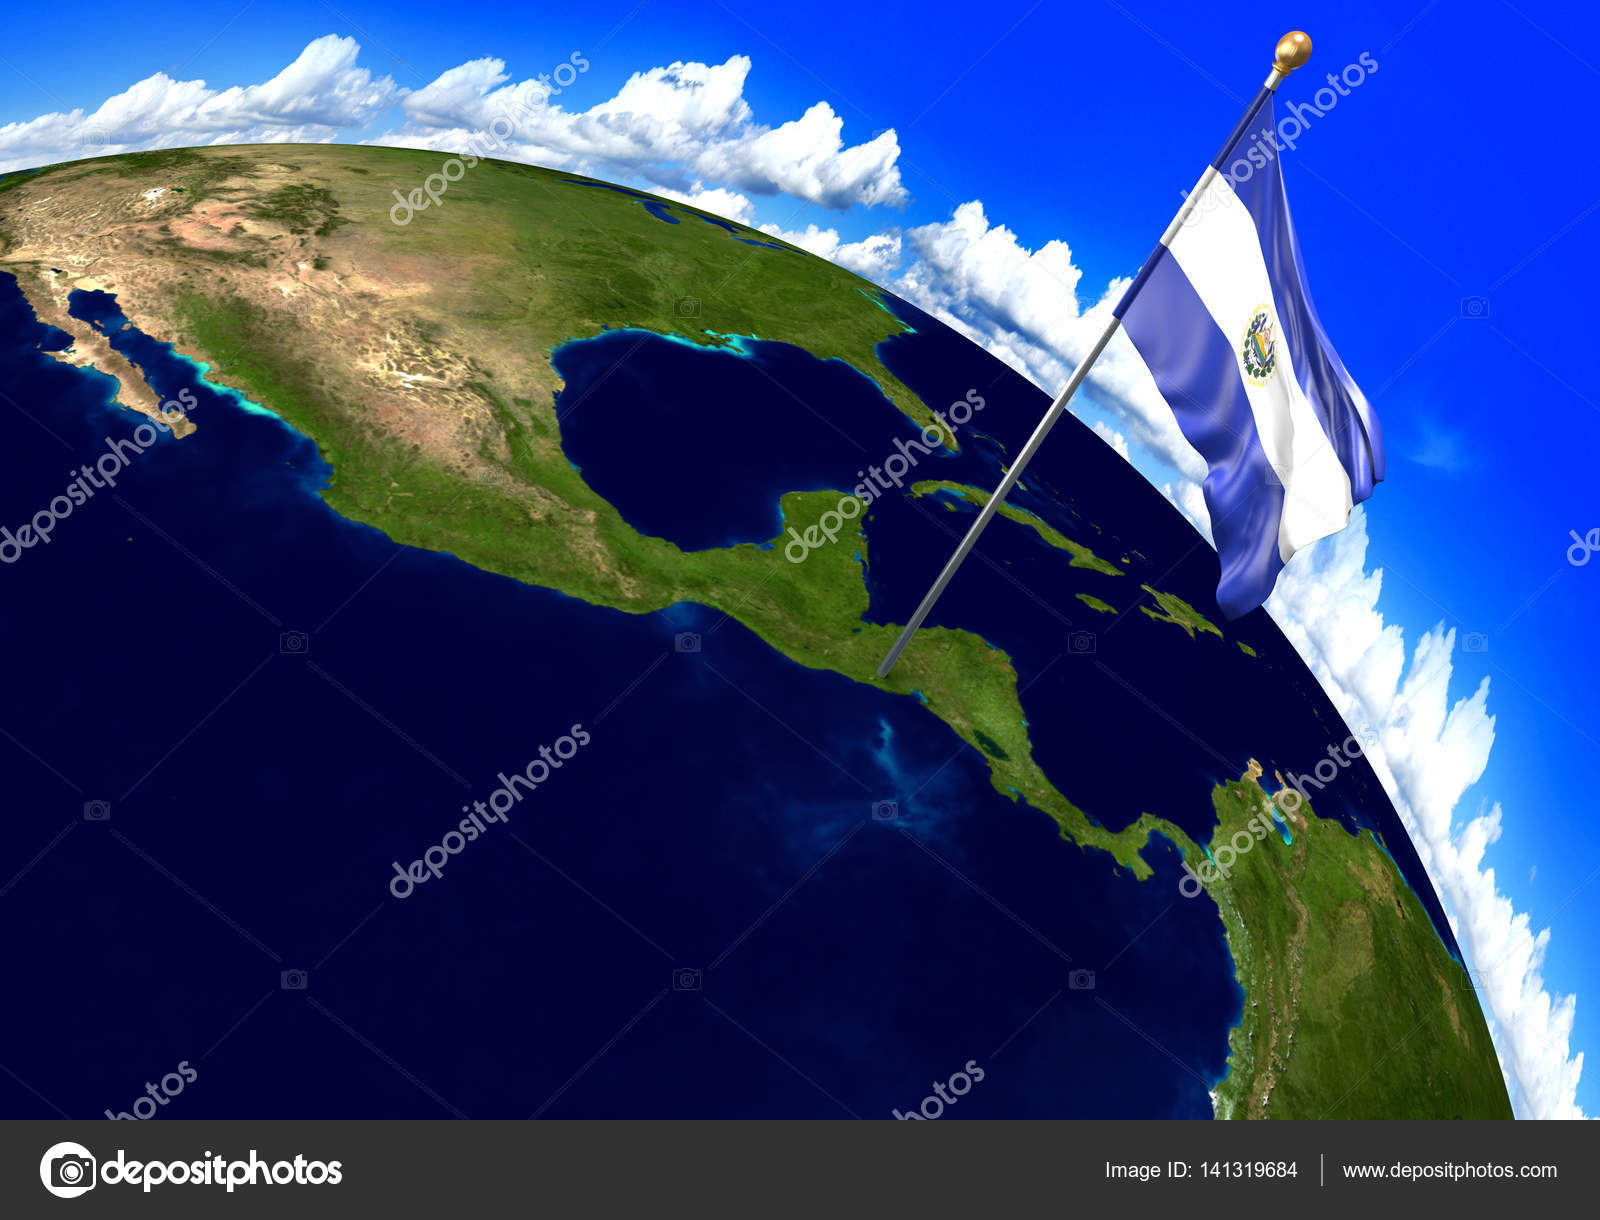 El salvador national flag marking the country location on world 3d render of the national flag of el salvador over the geographic location of the country on a world map parts of this image furnished by nasa gumiabroncs Image collections